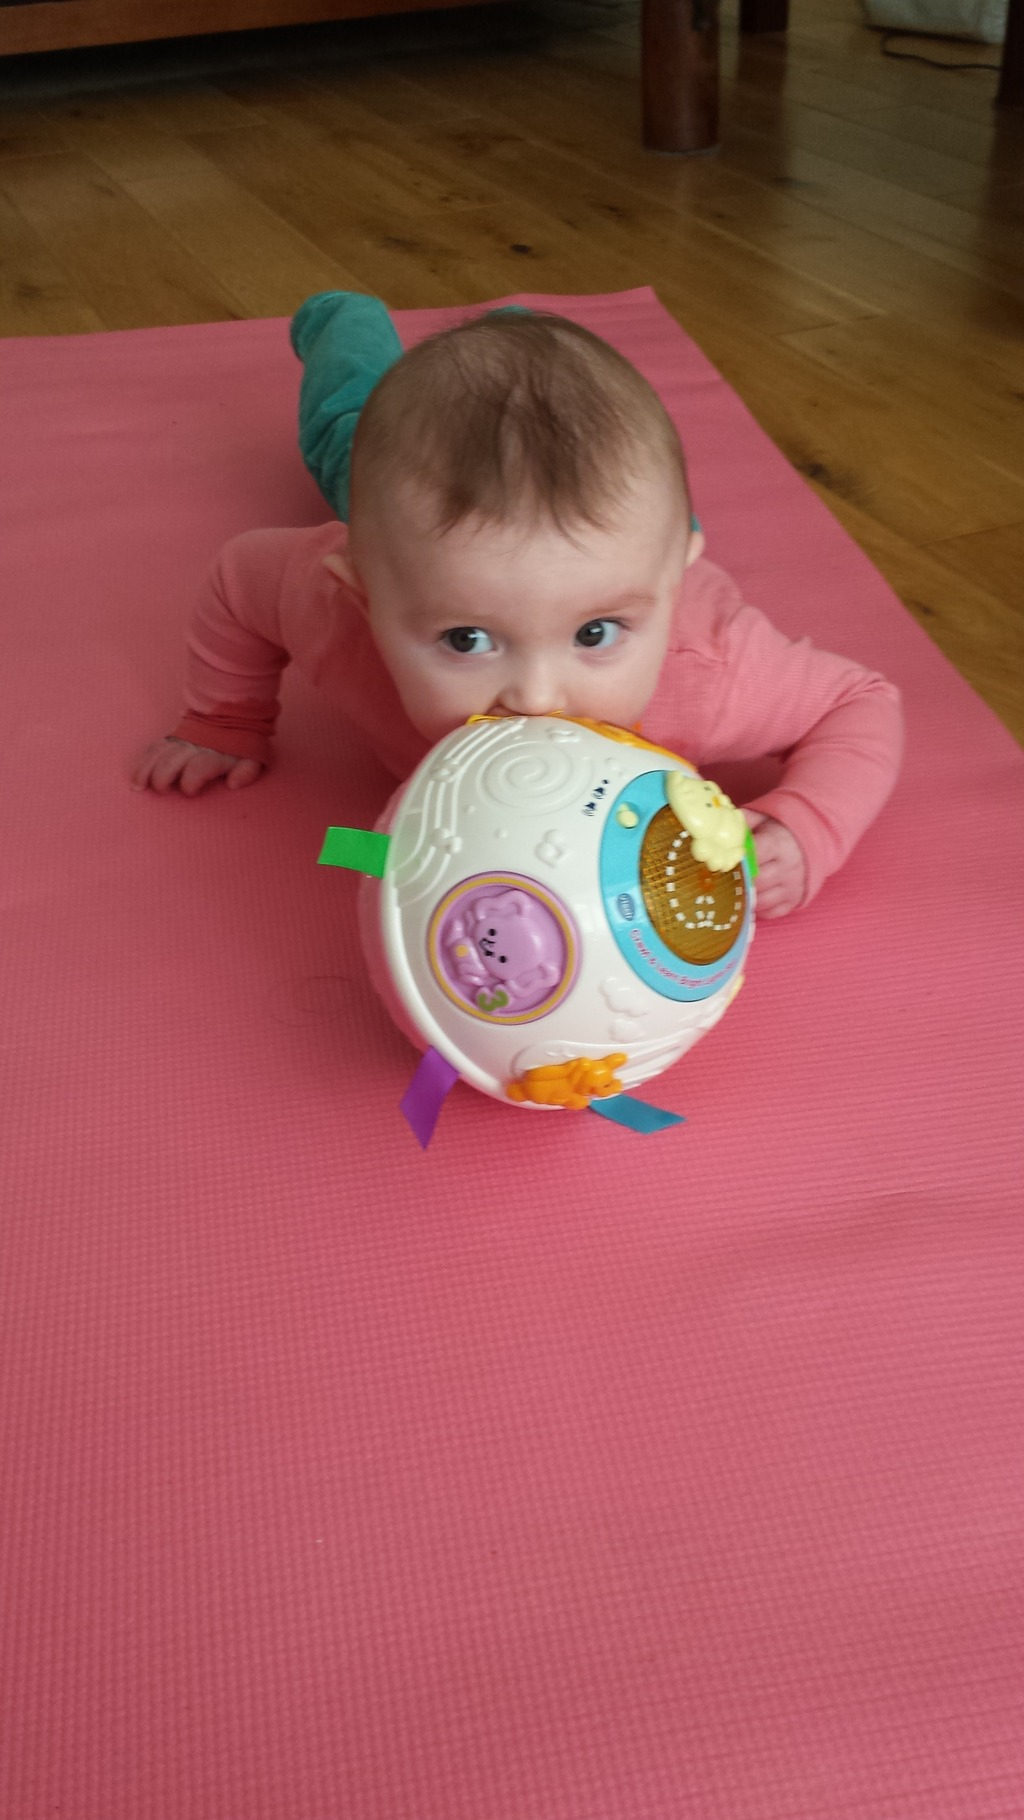 Best Baby Toys For 8 Months Old : Vtech crawl learn ball pink is best baby crawling toy